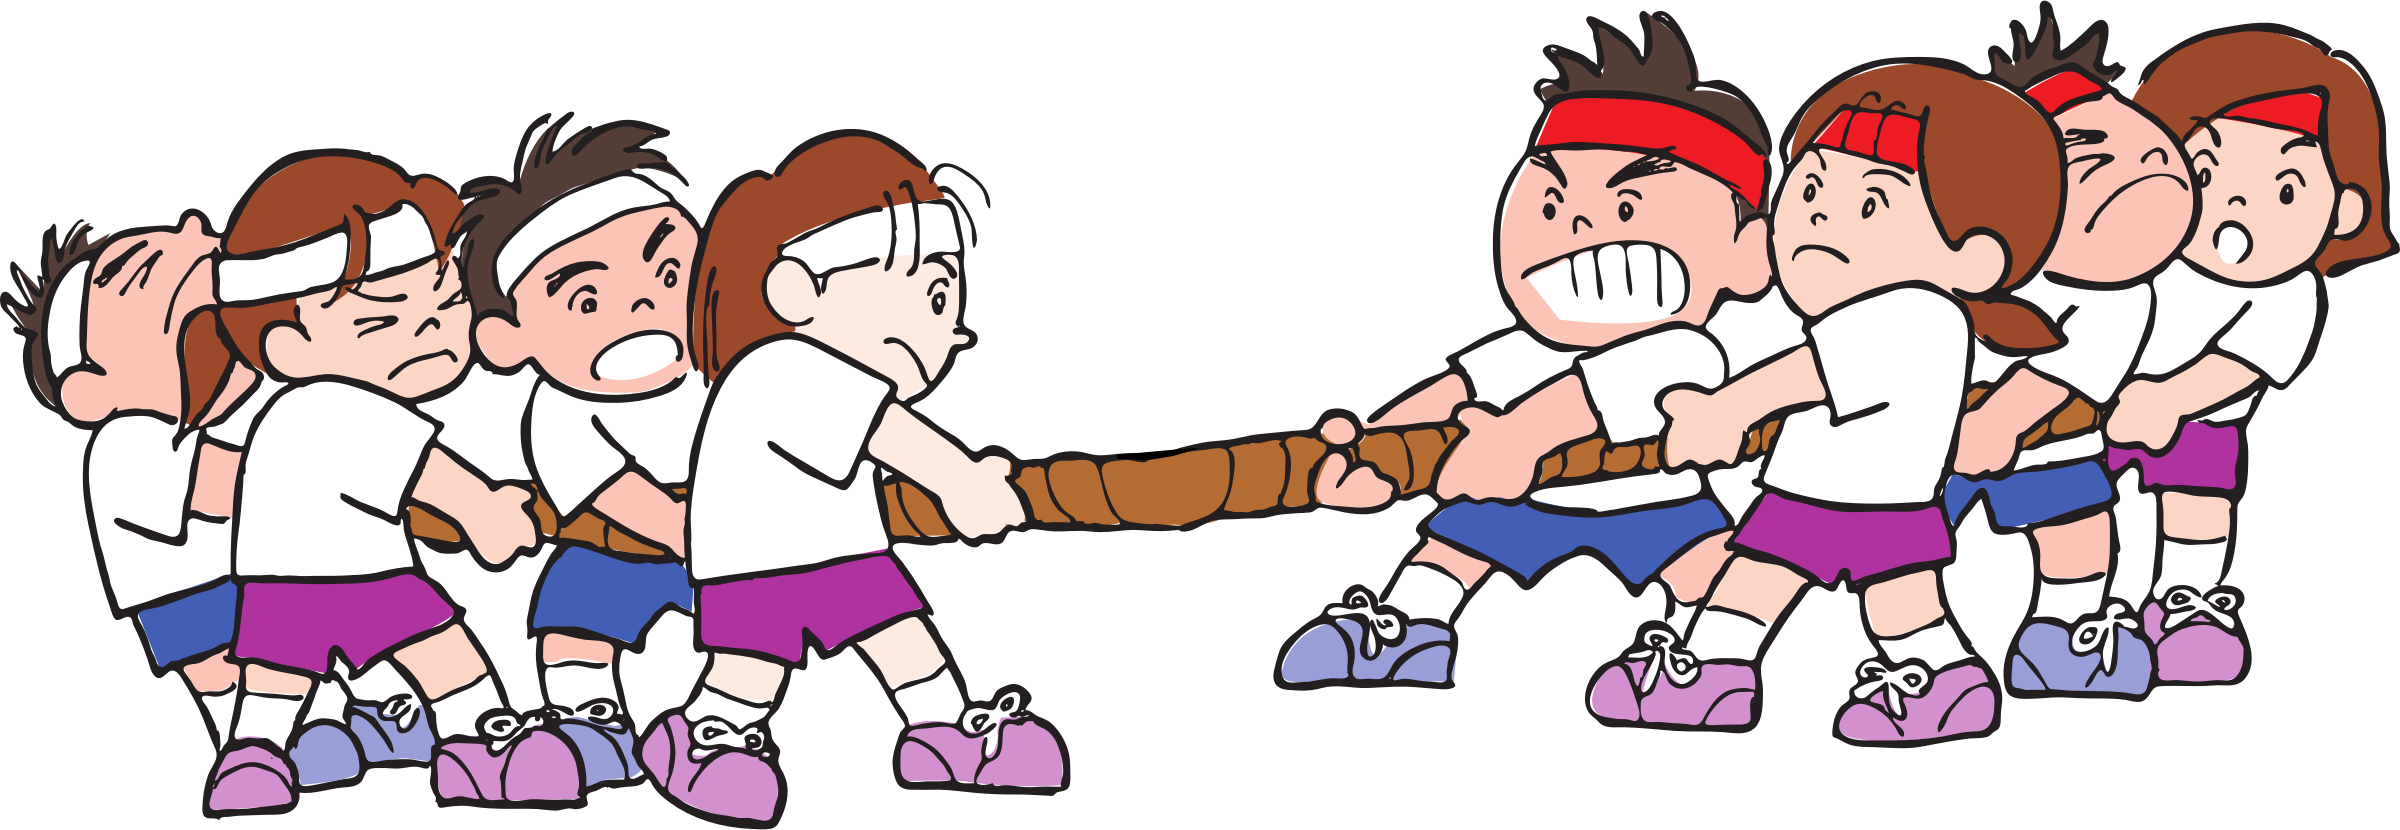 Day clipart sports. Big image png